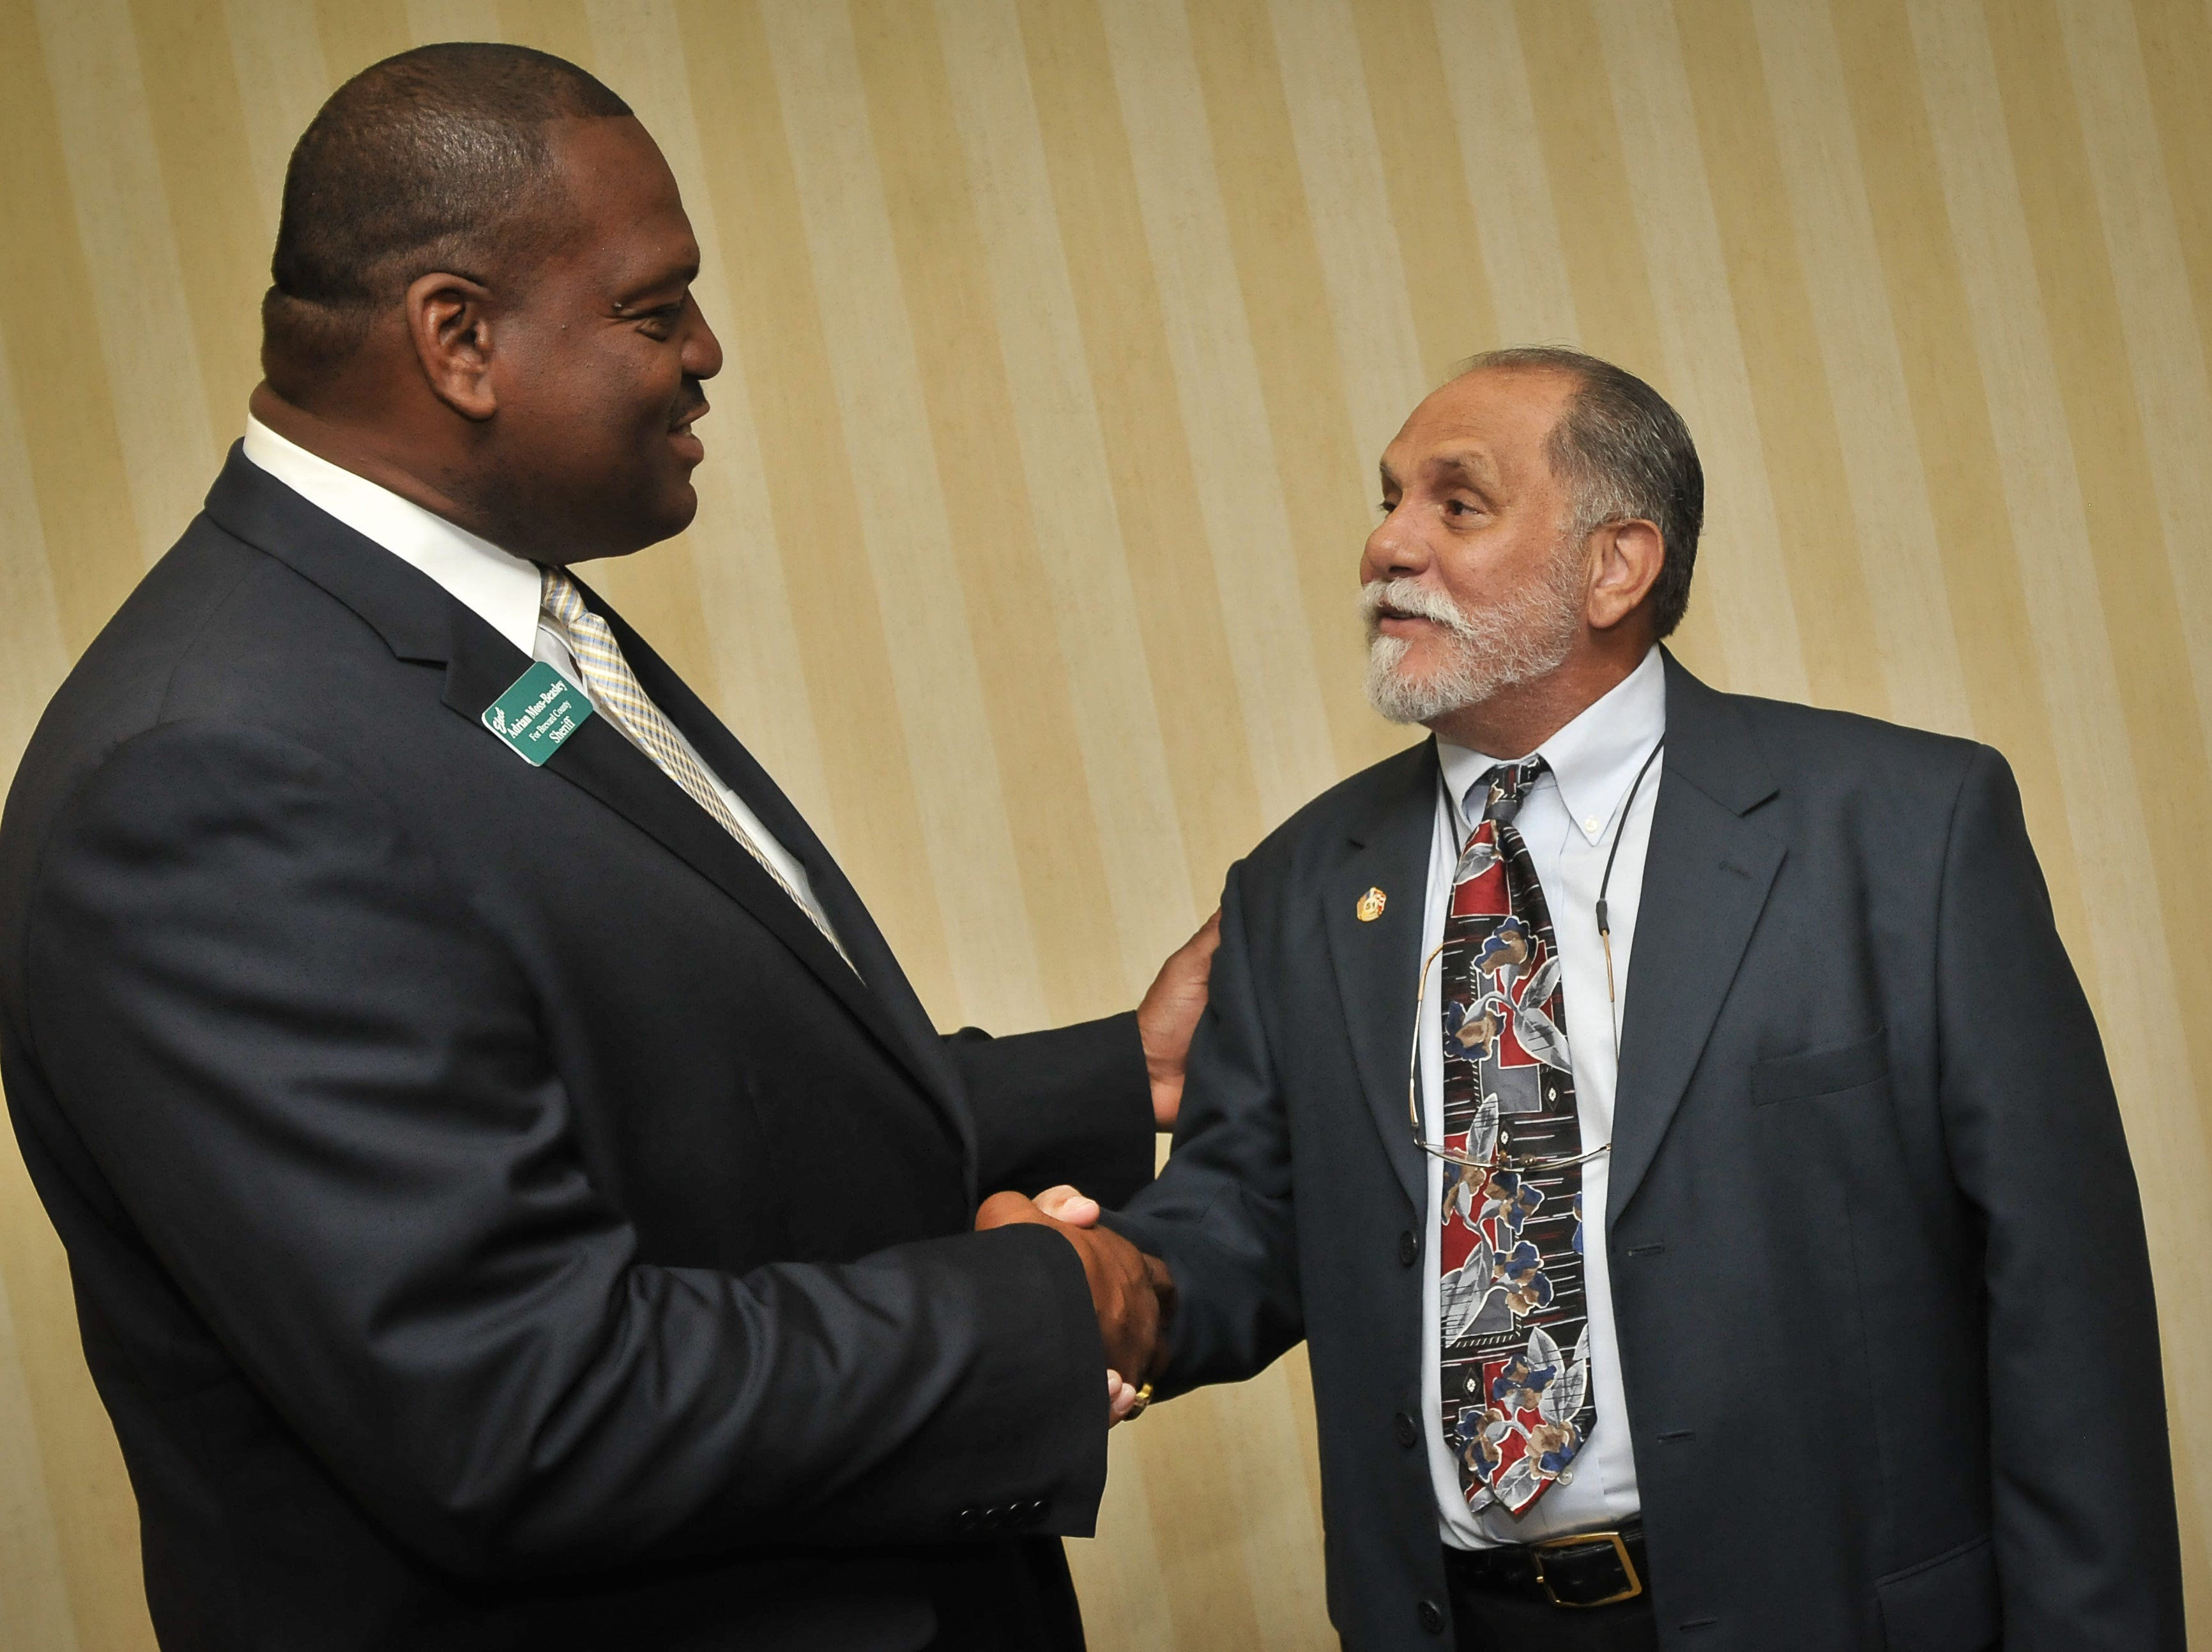 Adrian Moss-Beasley talks with Samuel Lopez during the Puerto Rican Day banquet dinner at the Hilton Rialto.